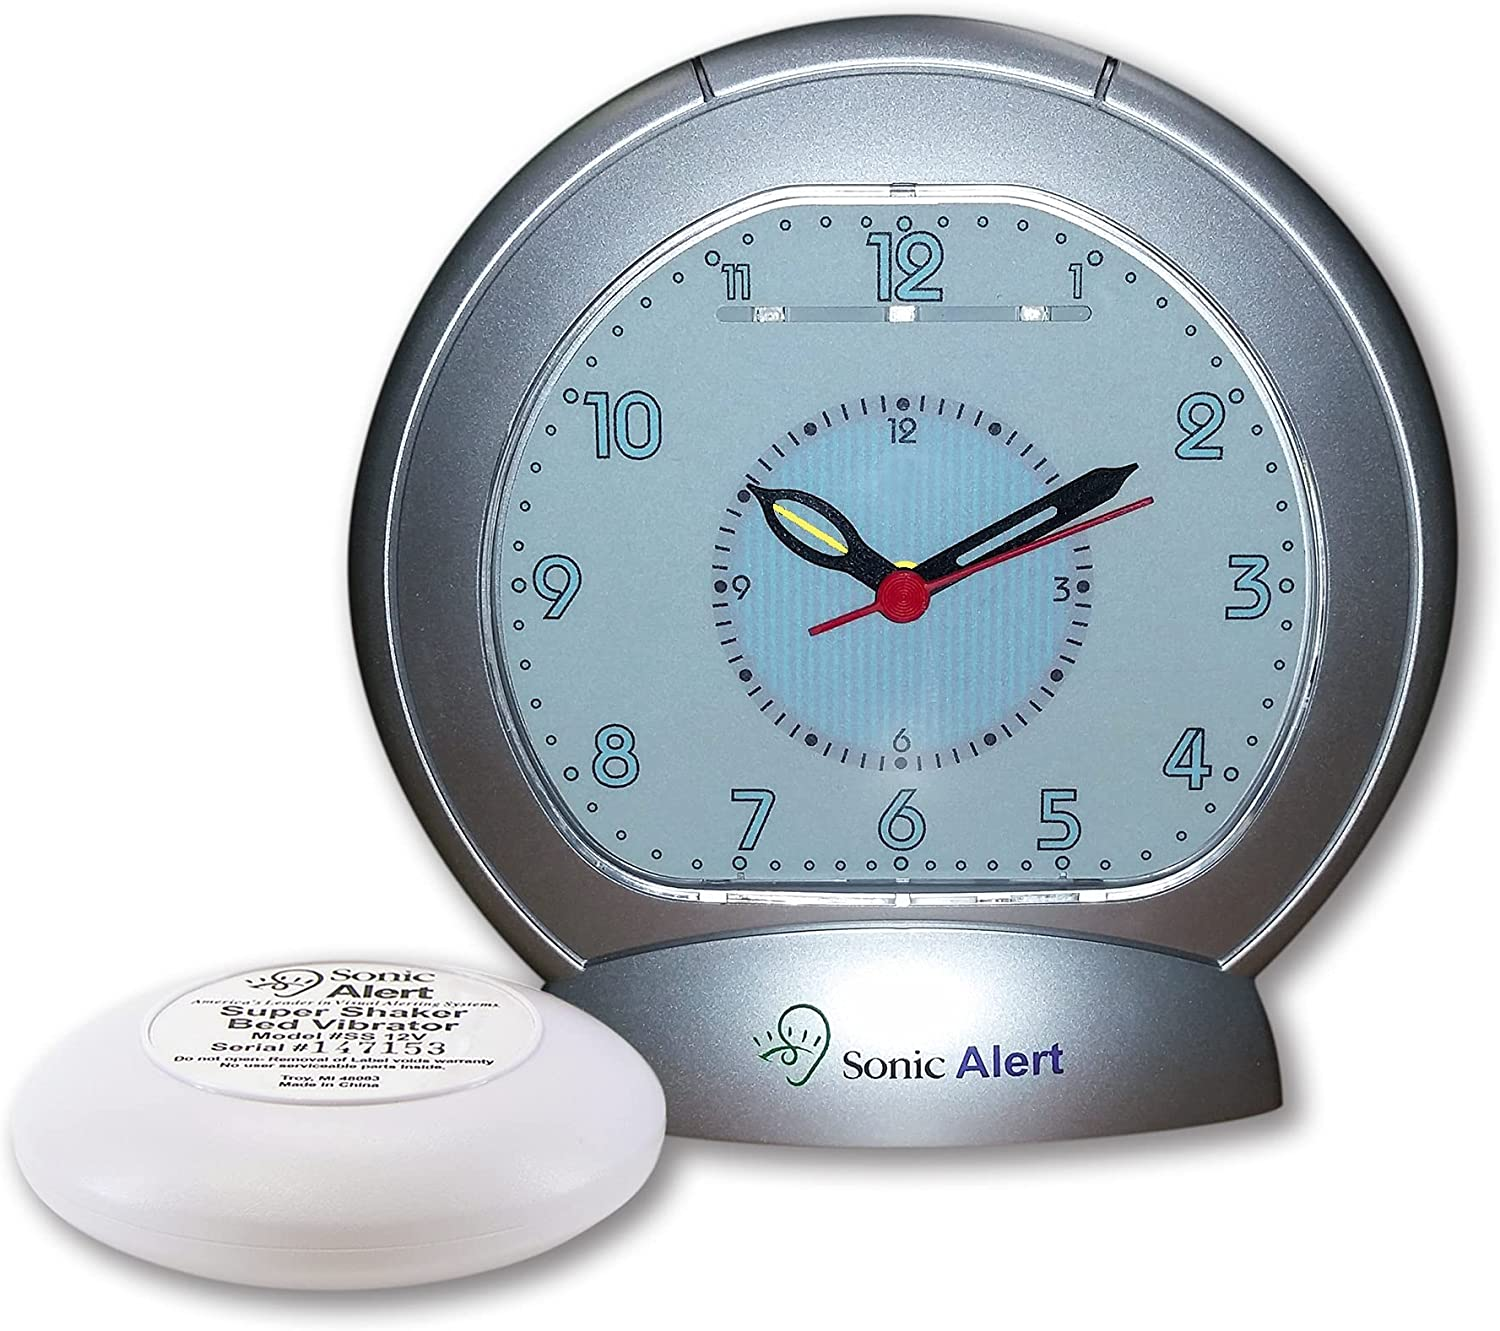 Sonic Bomb Analog Alarm Challenge the lowest price Clock with Shaker - Silver SBA475ss Bed Max 54% OFF